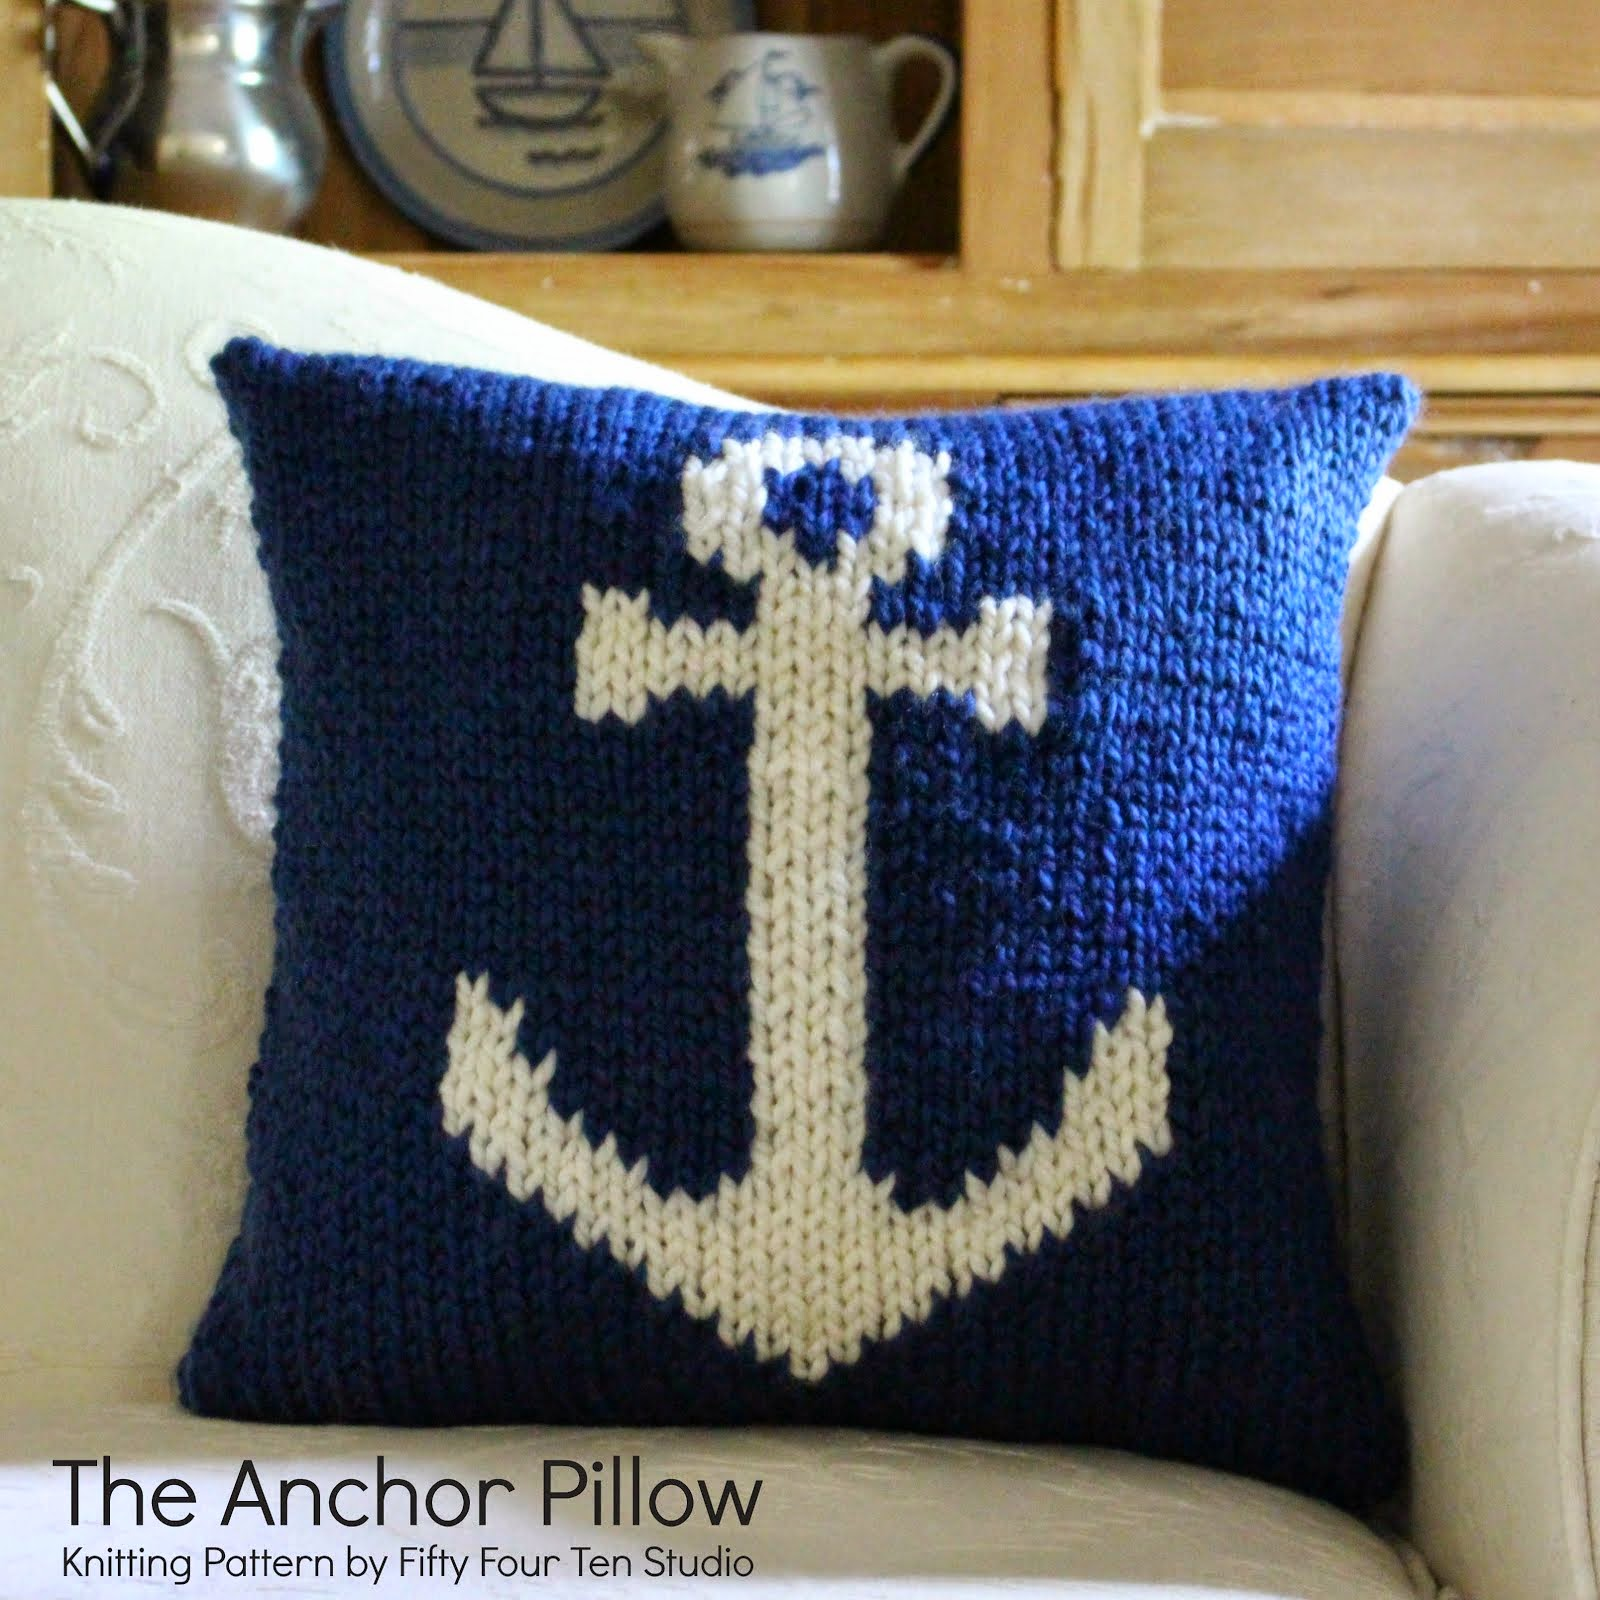 The Anchor Pillow